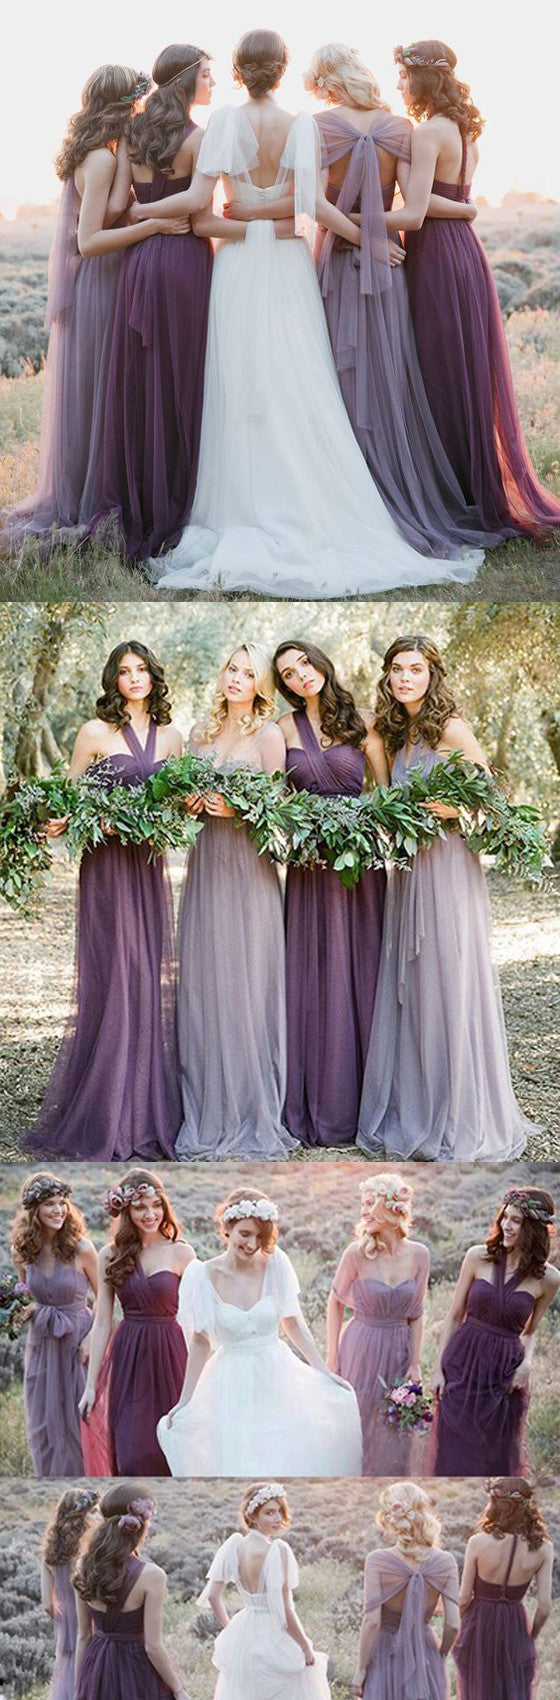 Convertiable Tulle Long Romantic Wedding Party Bridesmaid Dresses, BG51247 - Bubble Gown